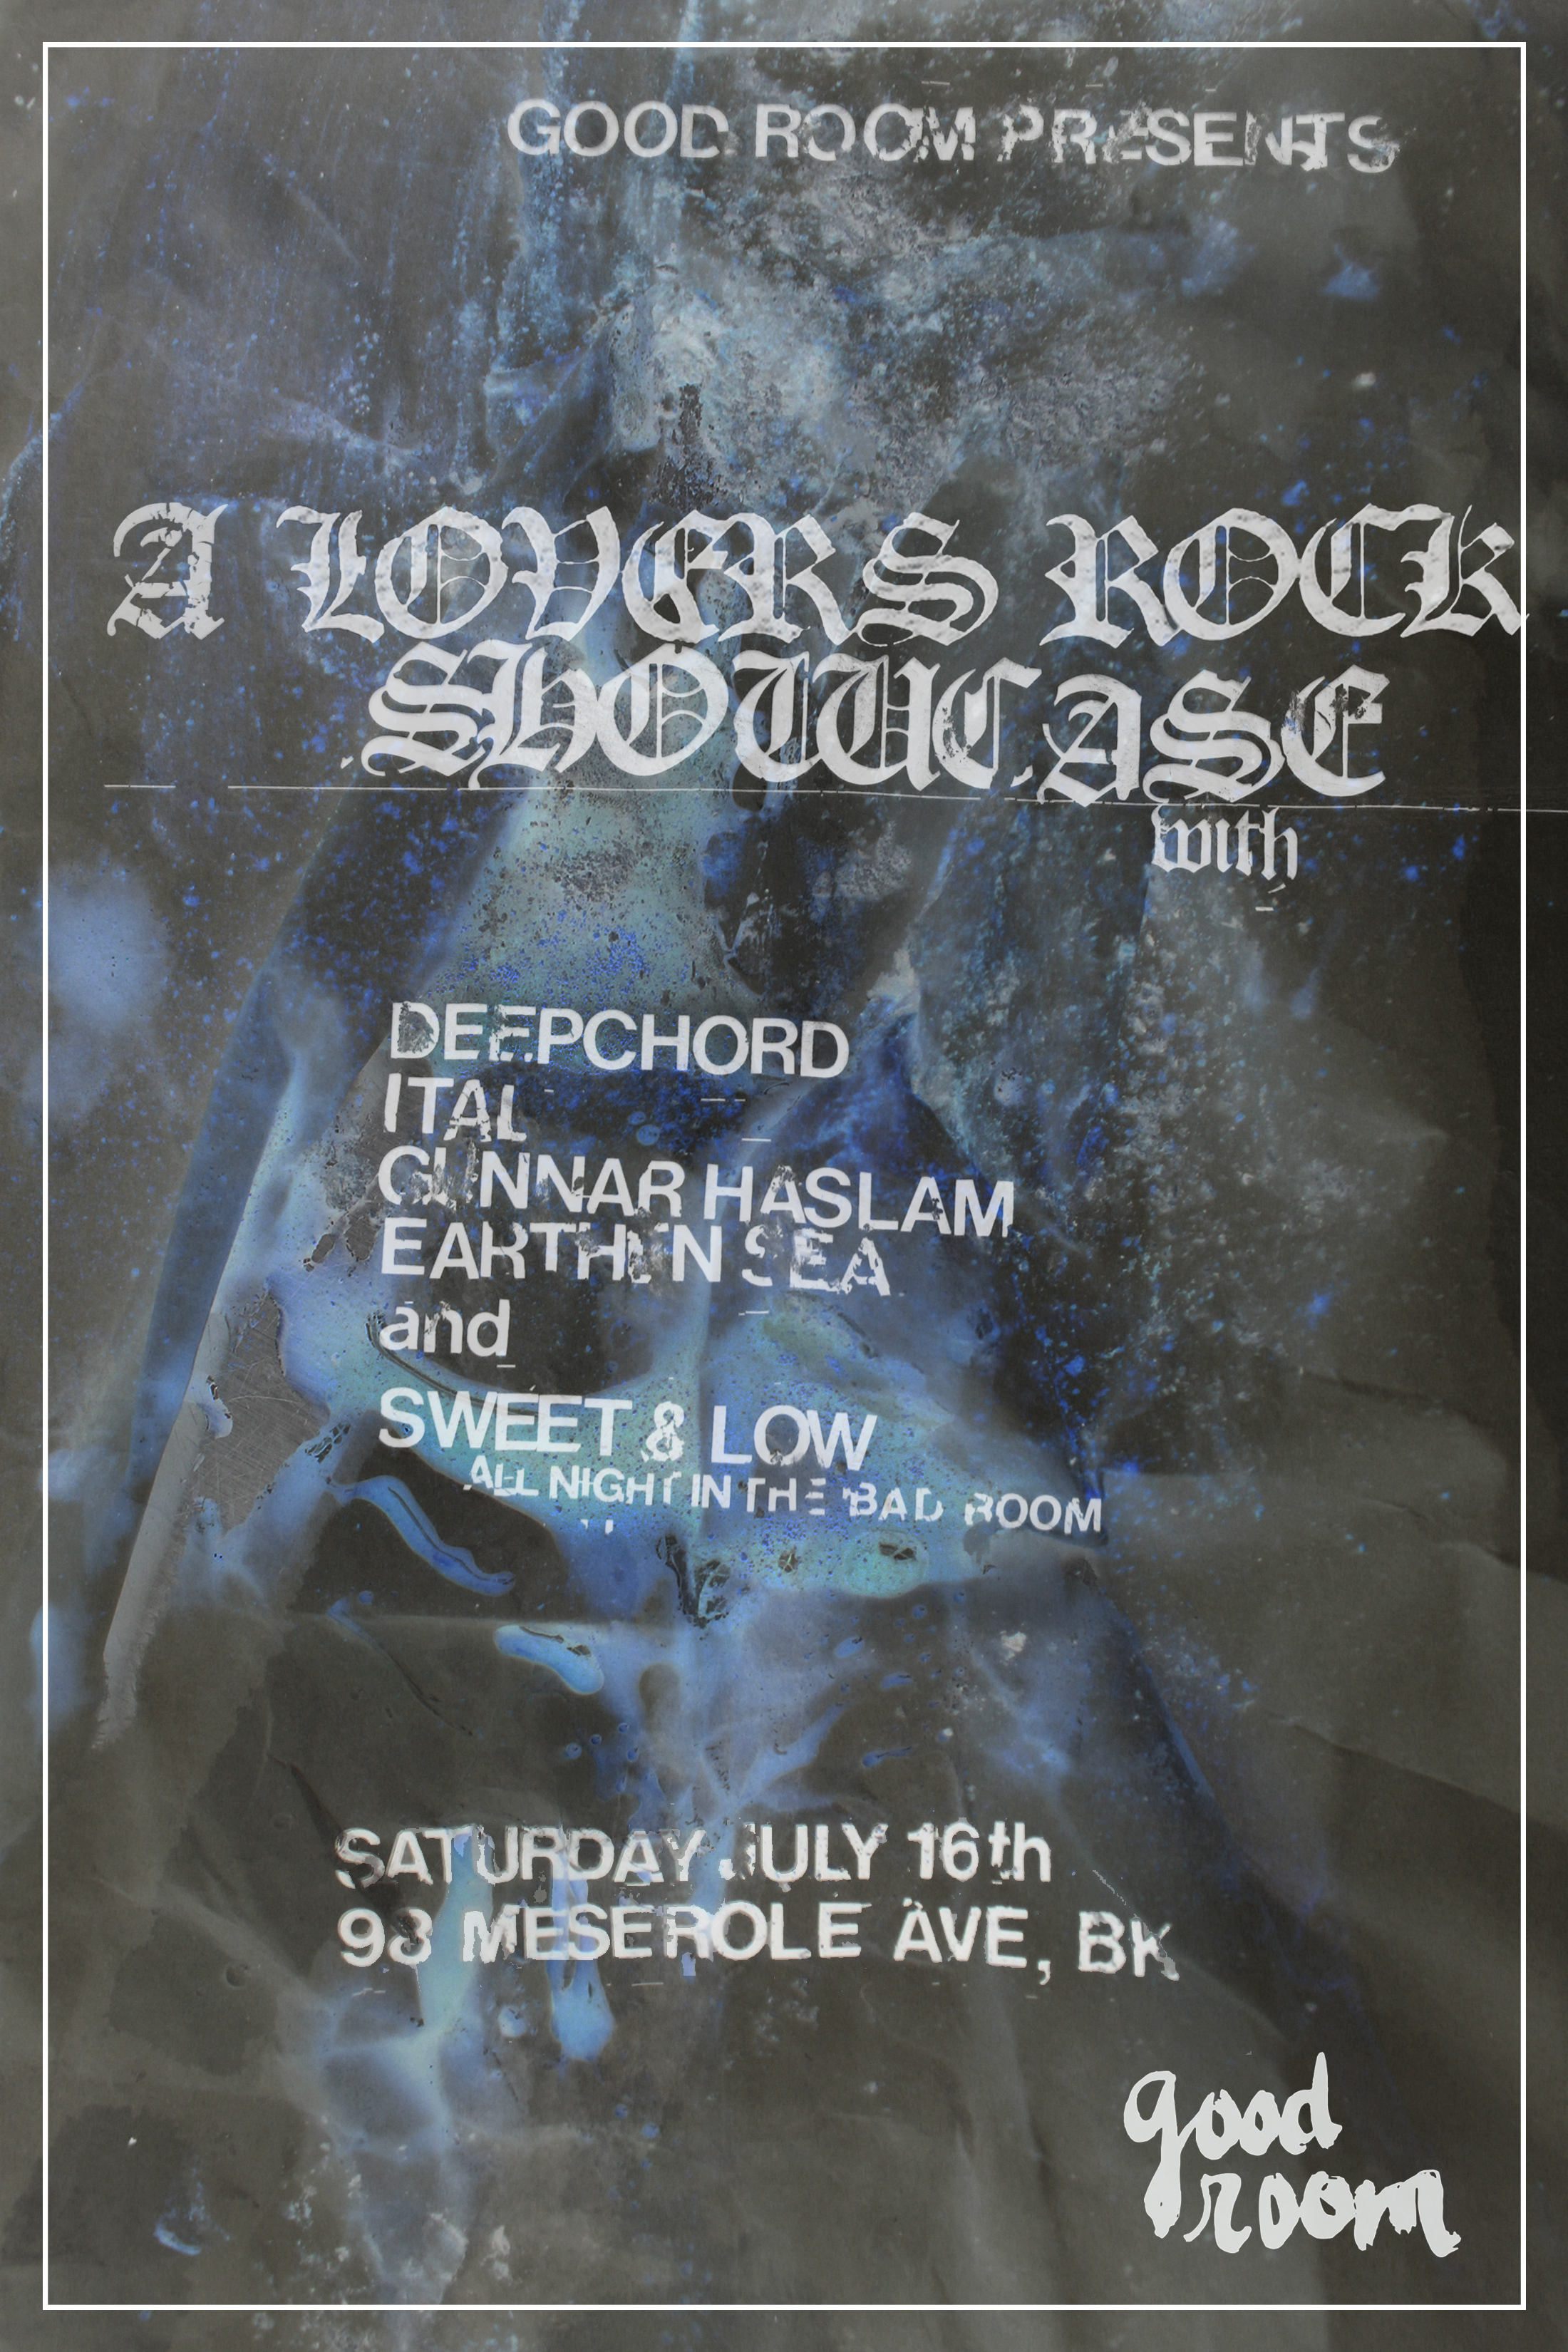 A lovers rock showcase